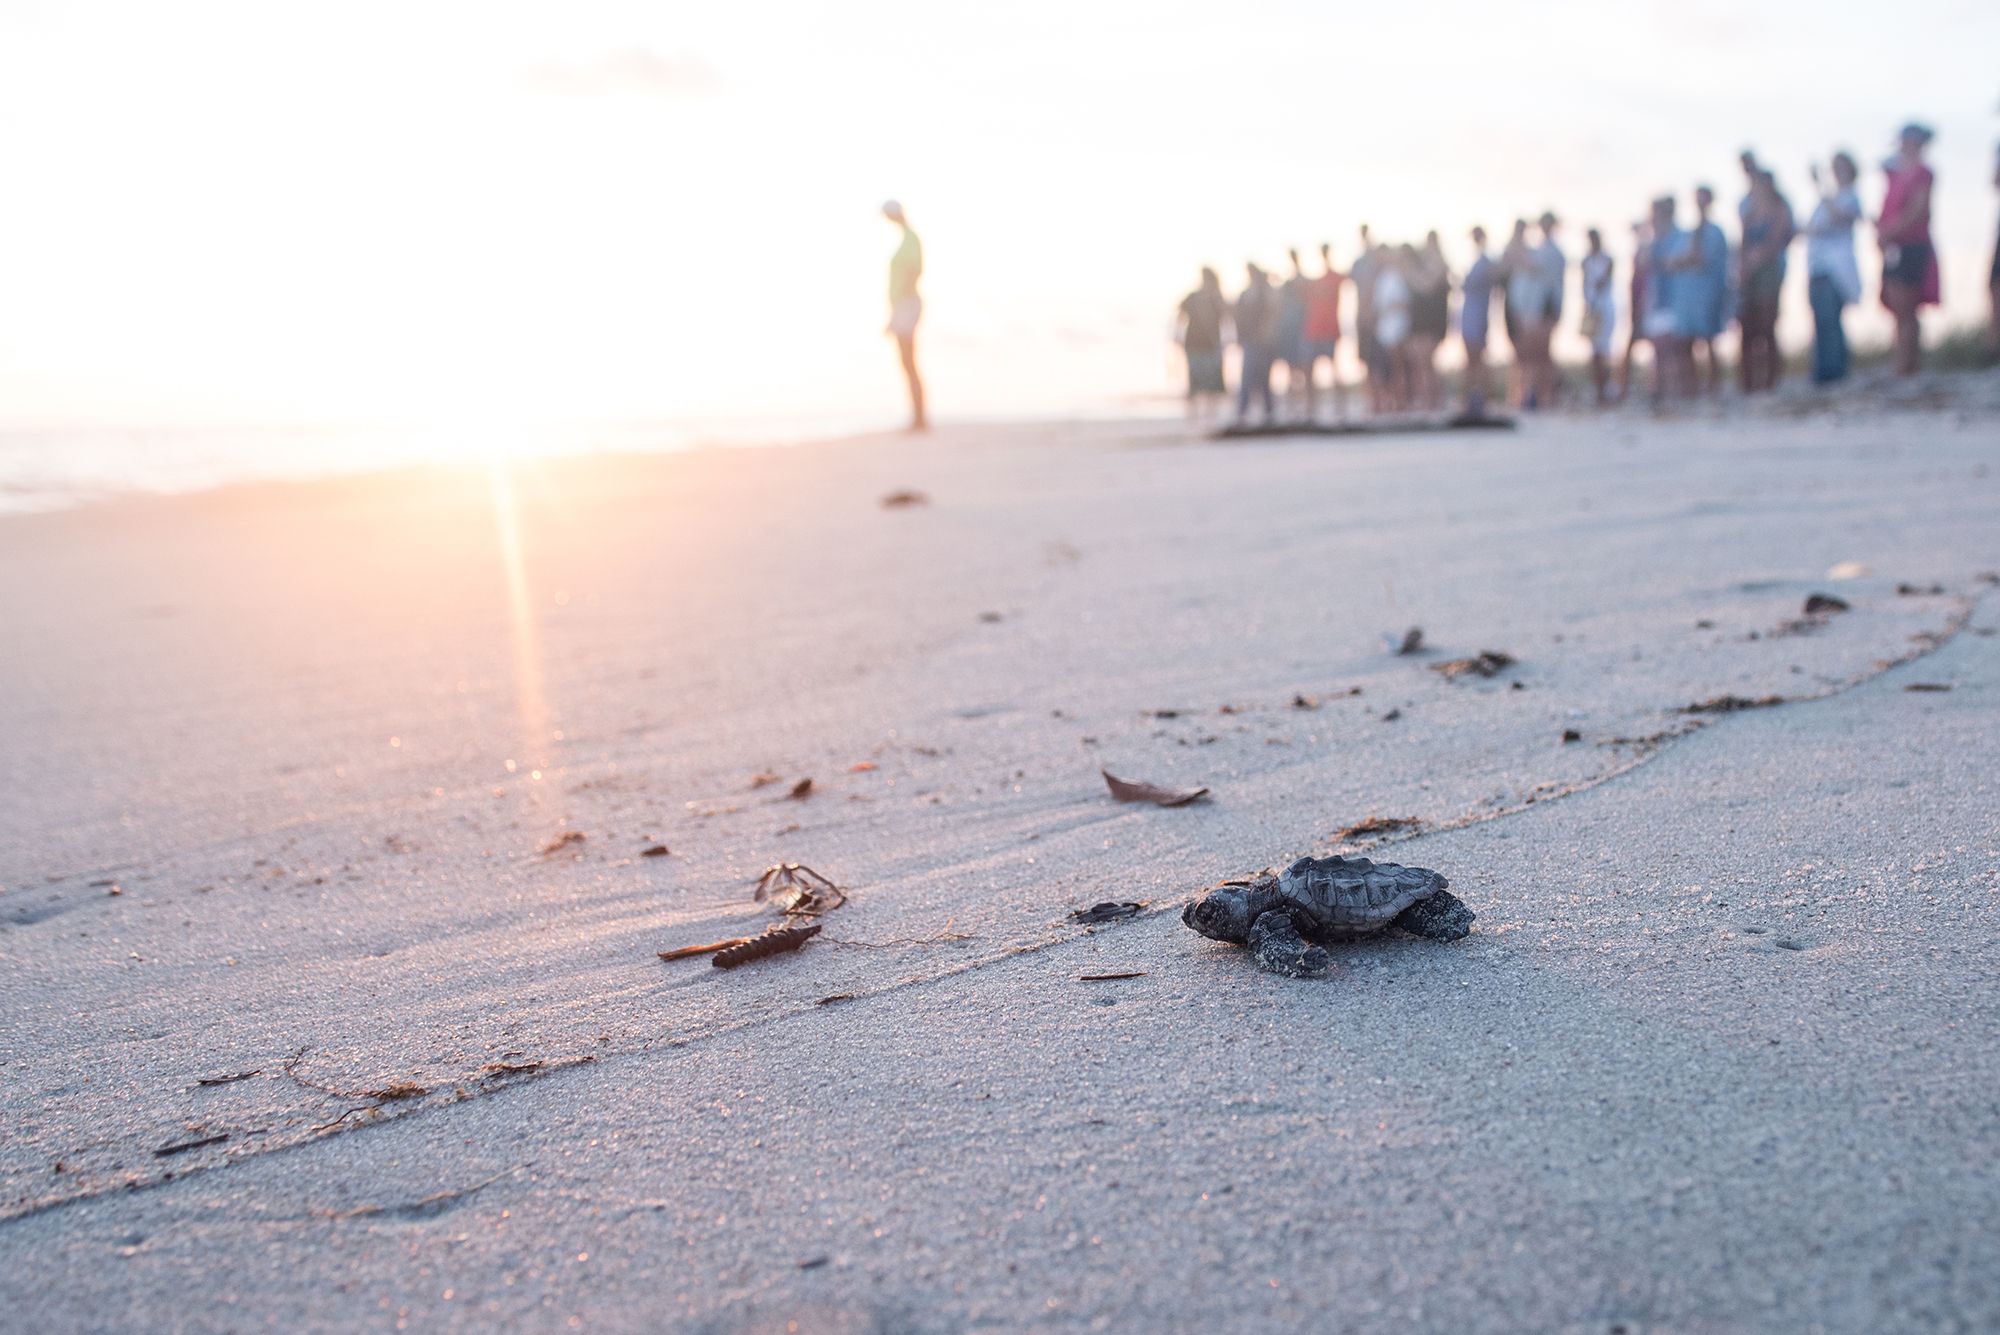 a baby loggerhead sea turtle makes it way to the ocean as onlookers watch in the background